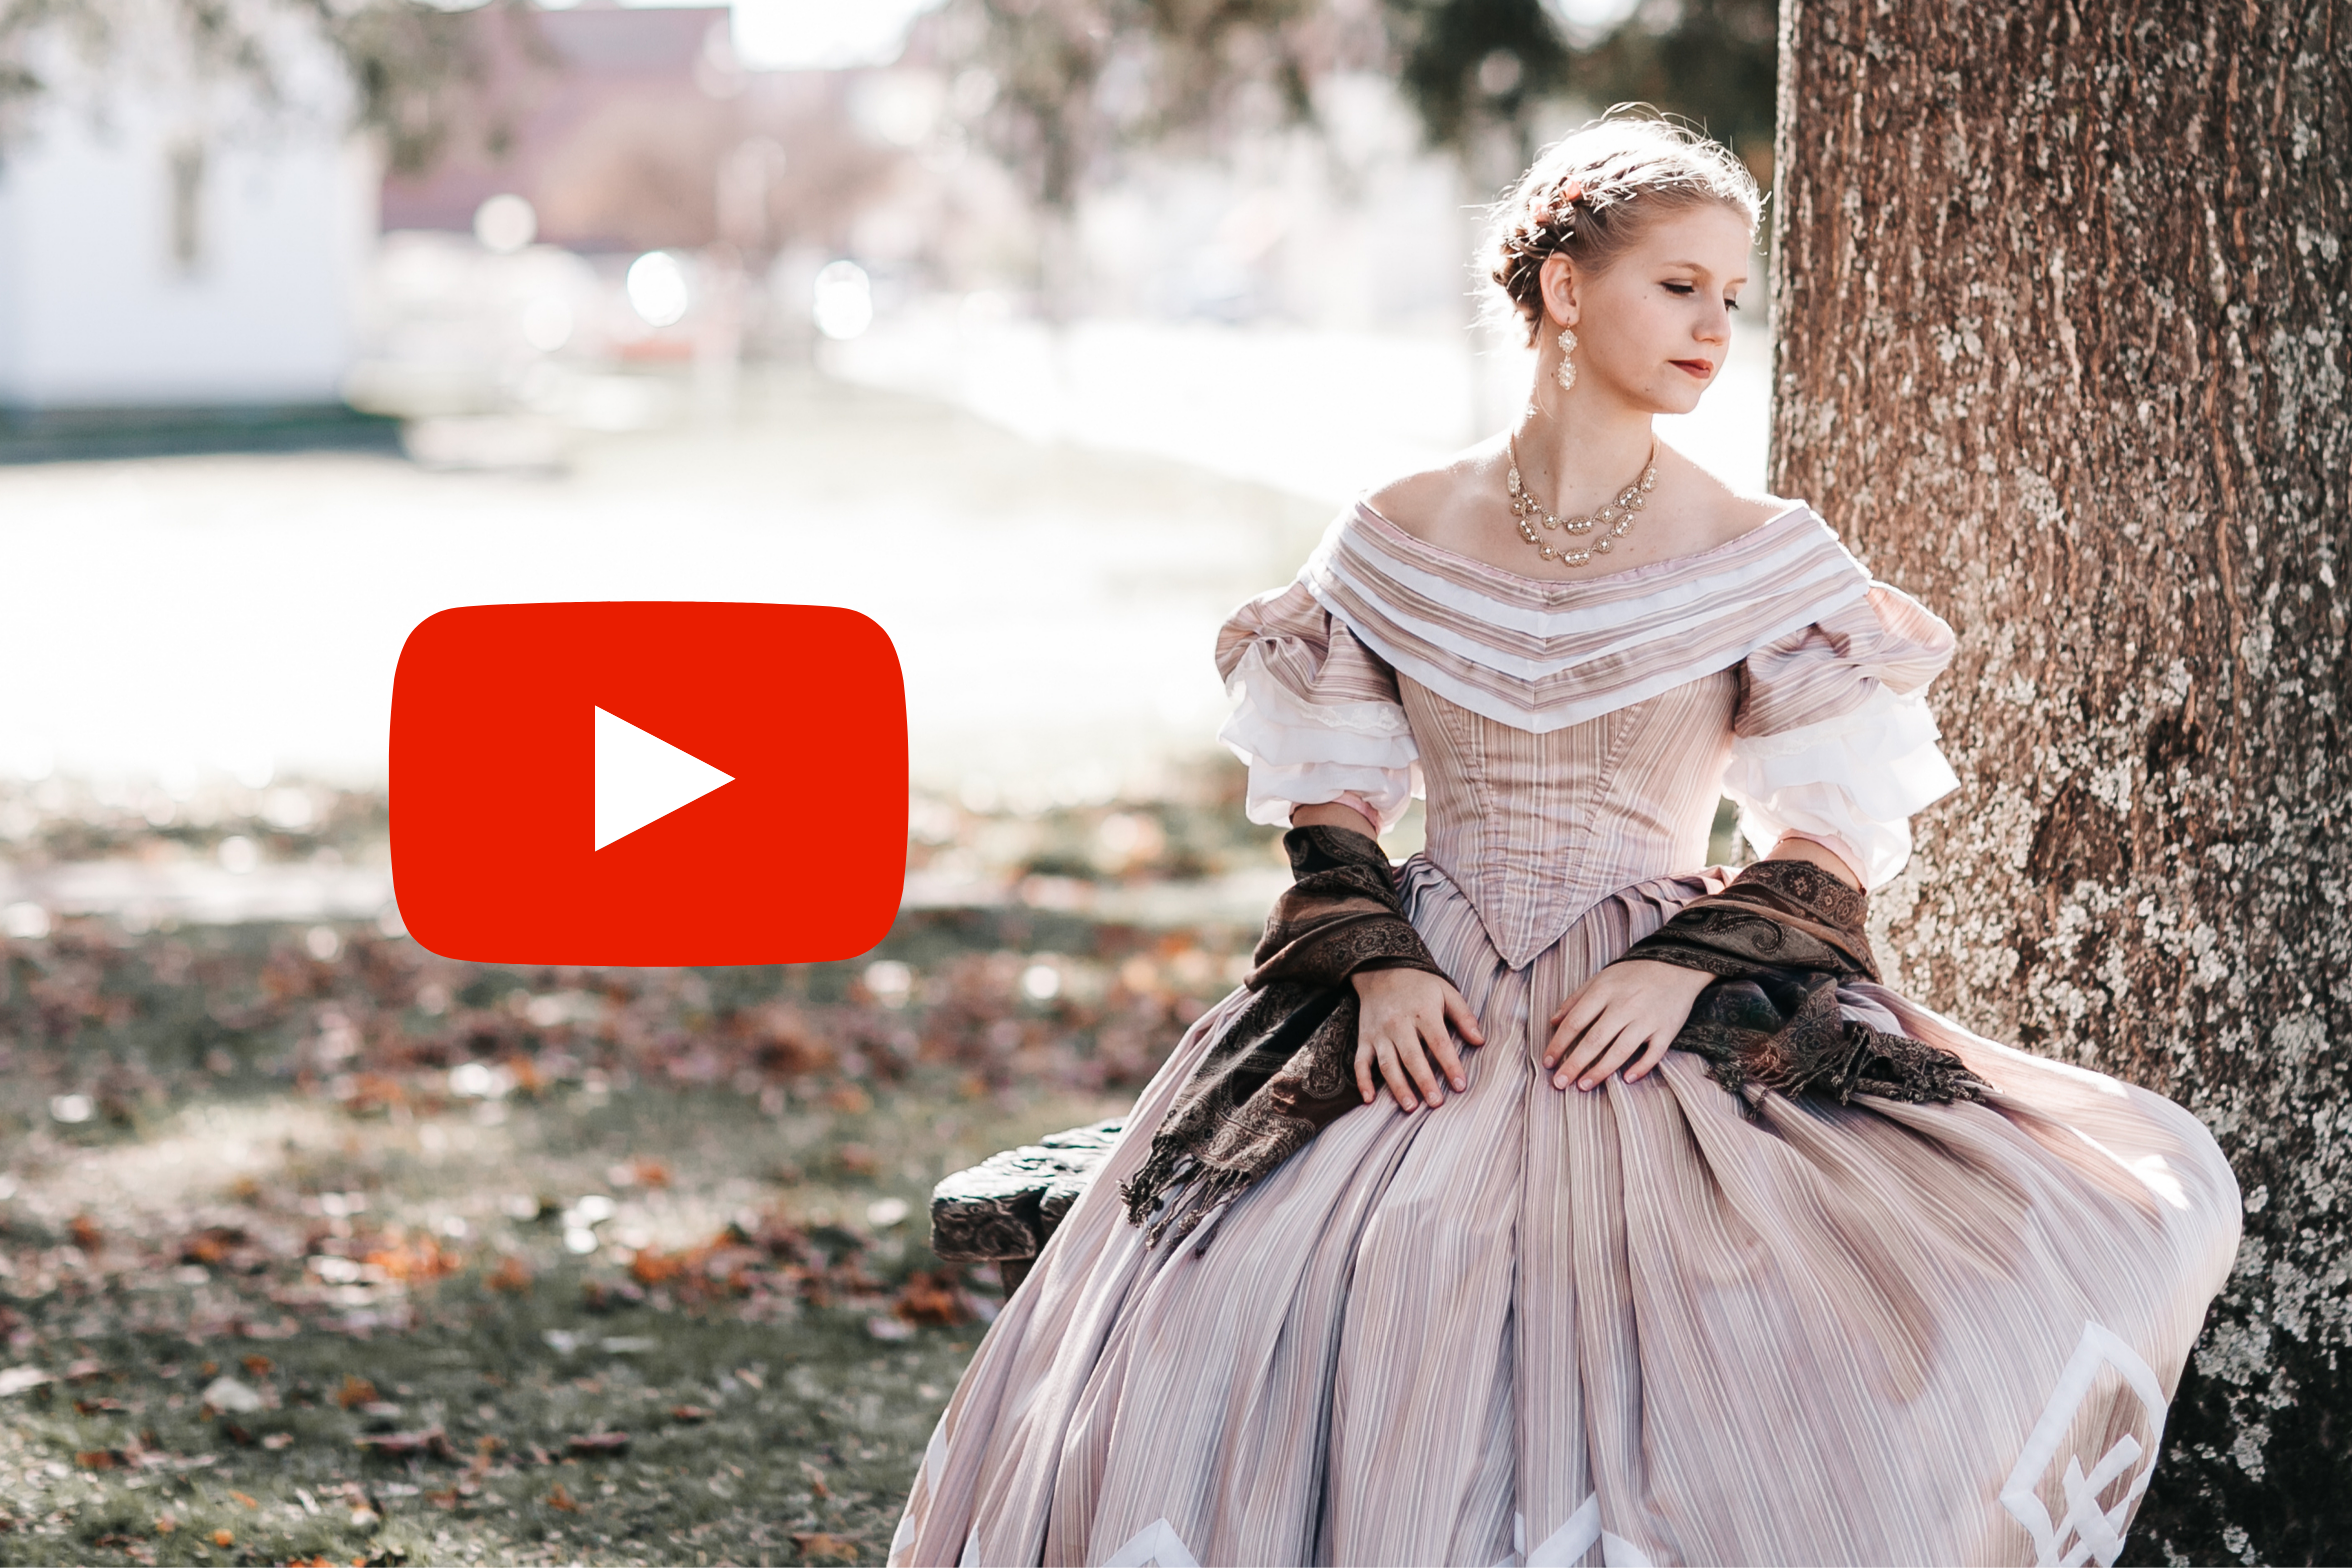 1860's Evening Attire – Civil War Era Ballgown – Video